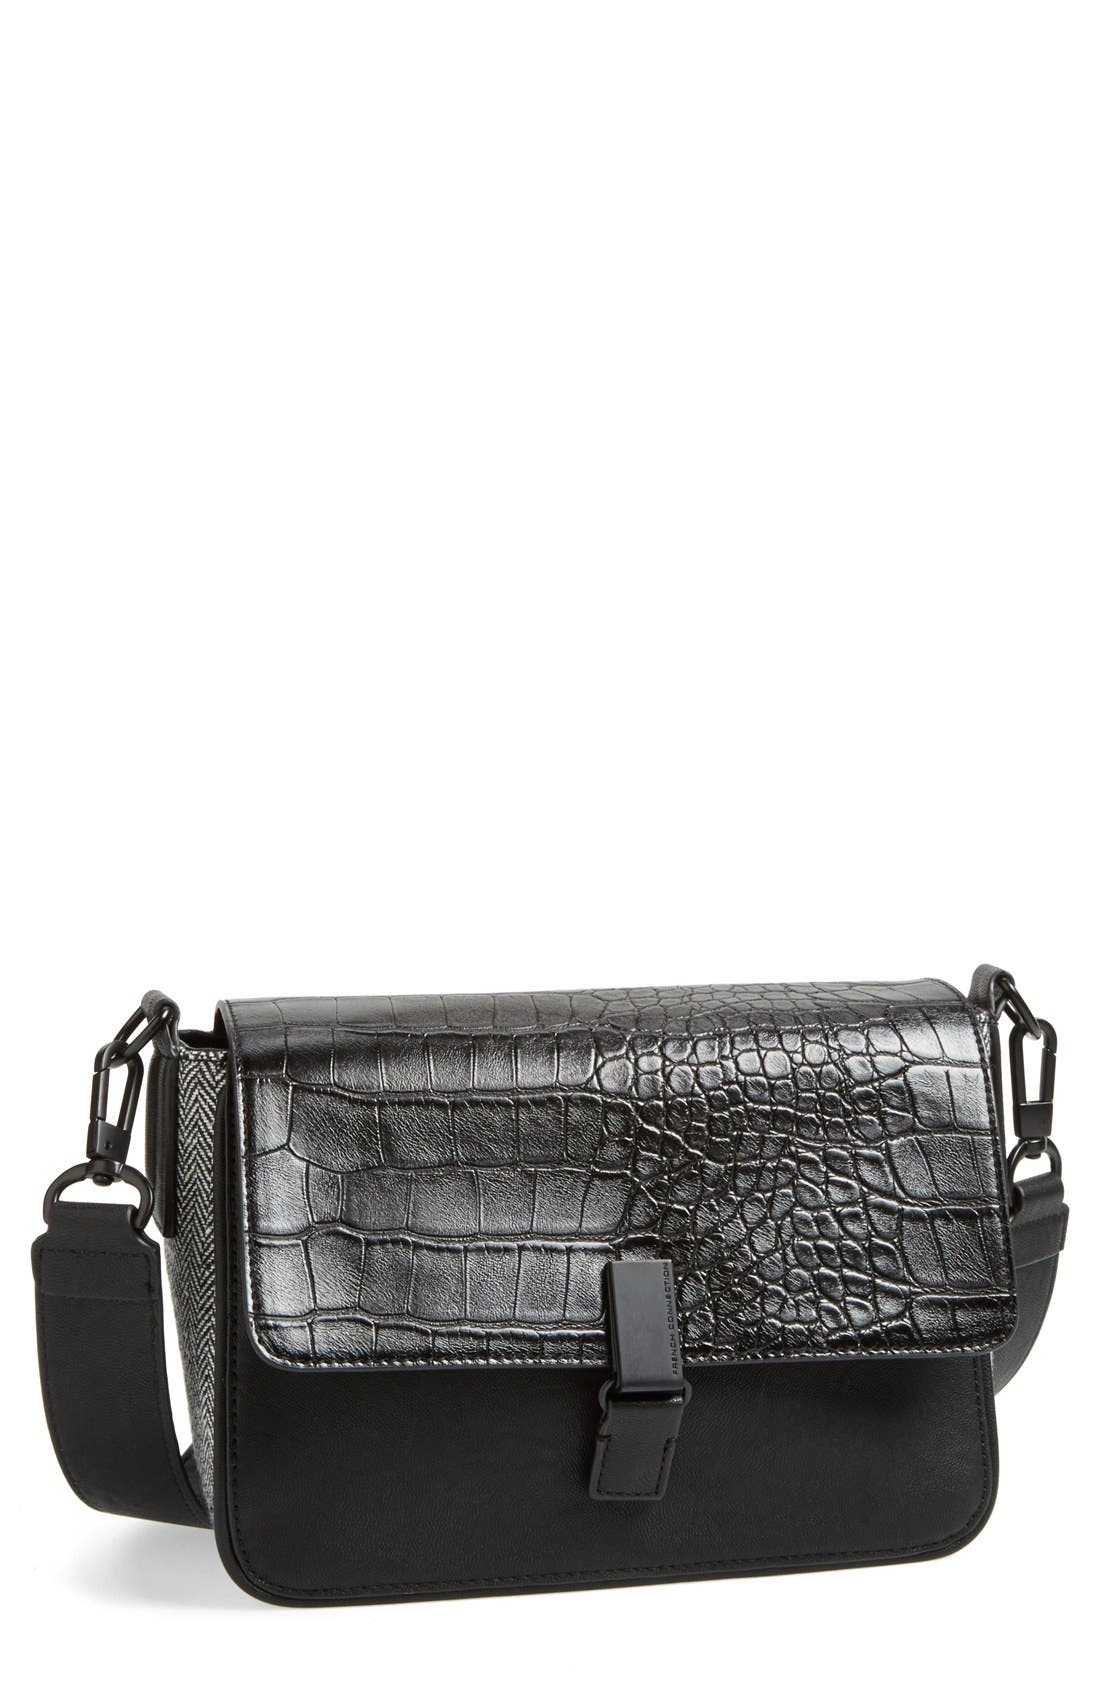 Alternate Image 1 Selected - French Connection 'She's a Lady' Shoulder Bag